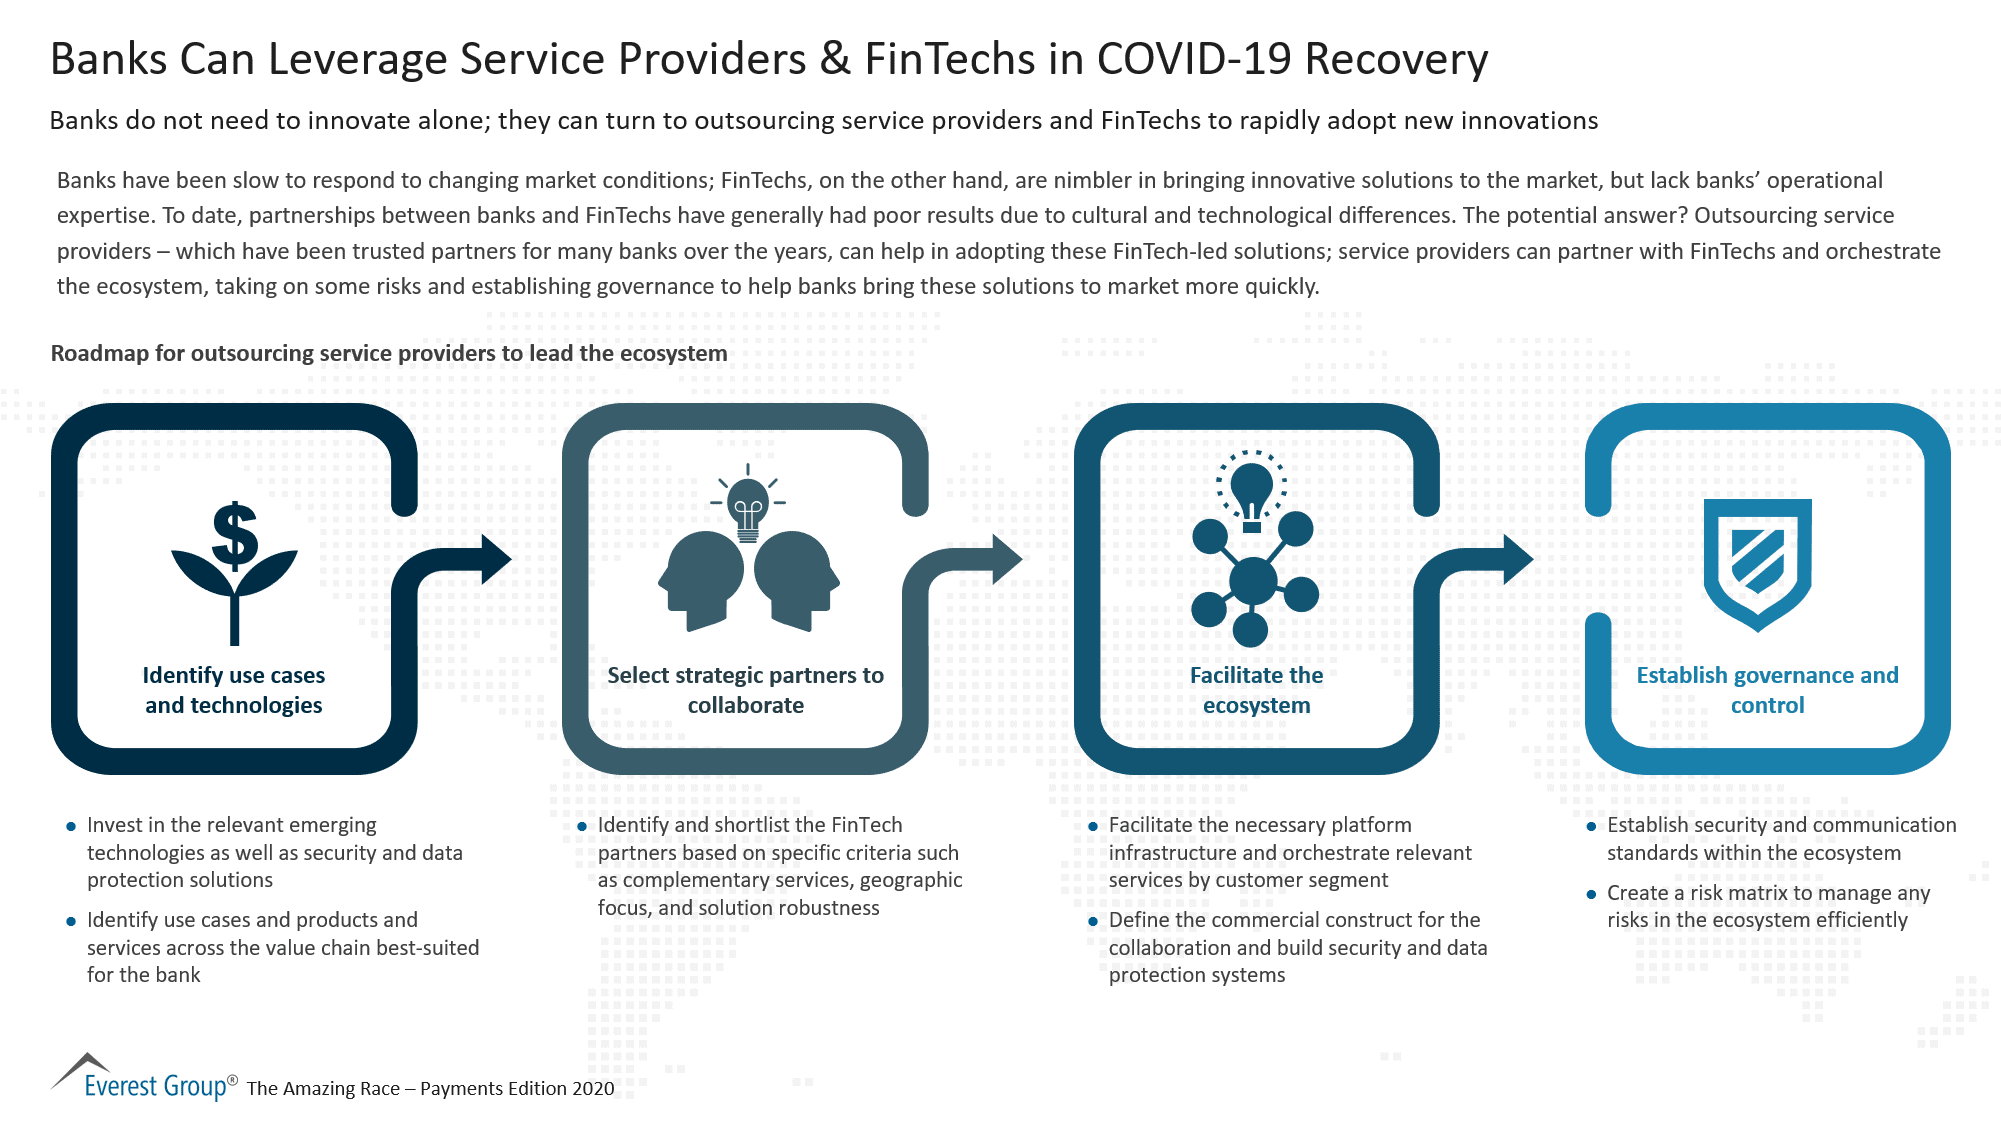 Banks Can Leverage Service Providers & FinTechs in COVID-19 Recovery